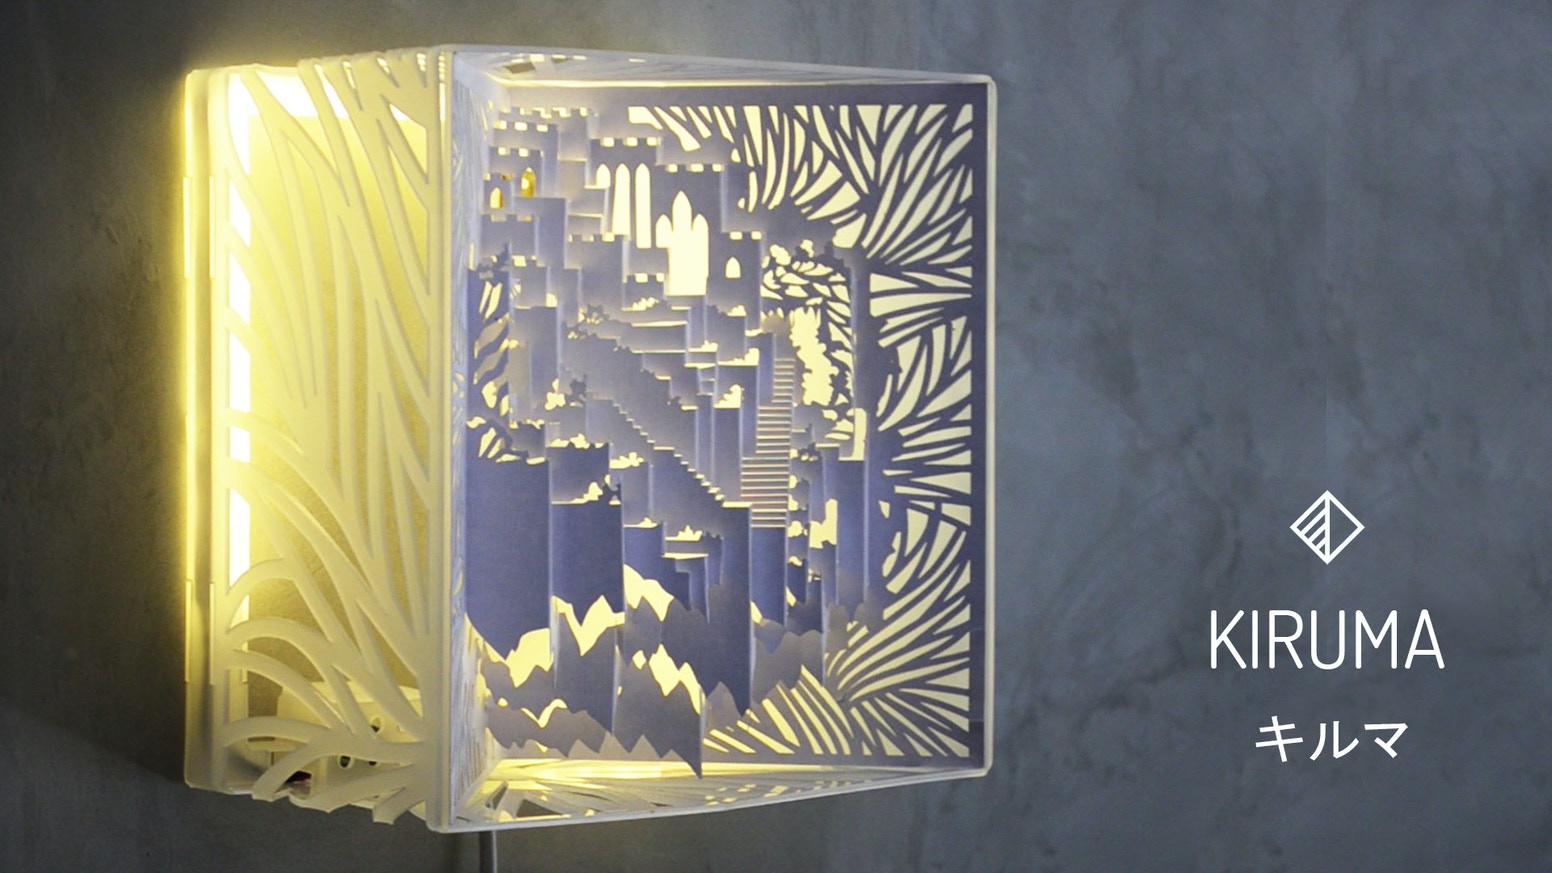 Paper cut diorama of a floating castle, encased within a backlit acrylic frame box, suitable for wall hanging or as a table lamp.